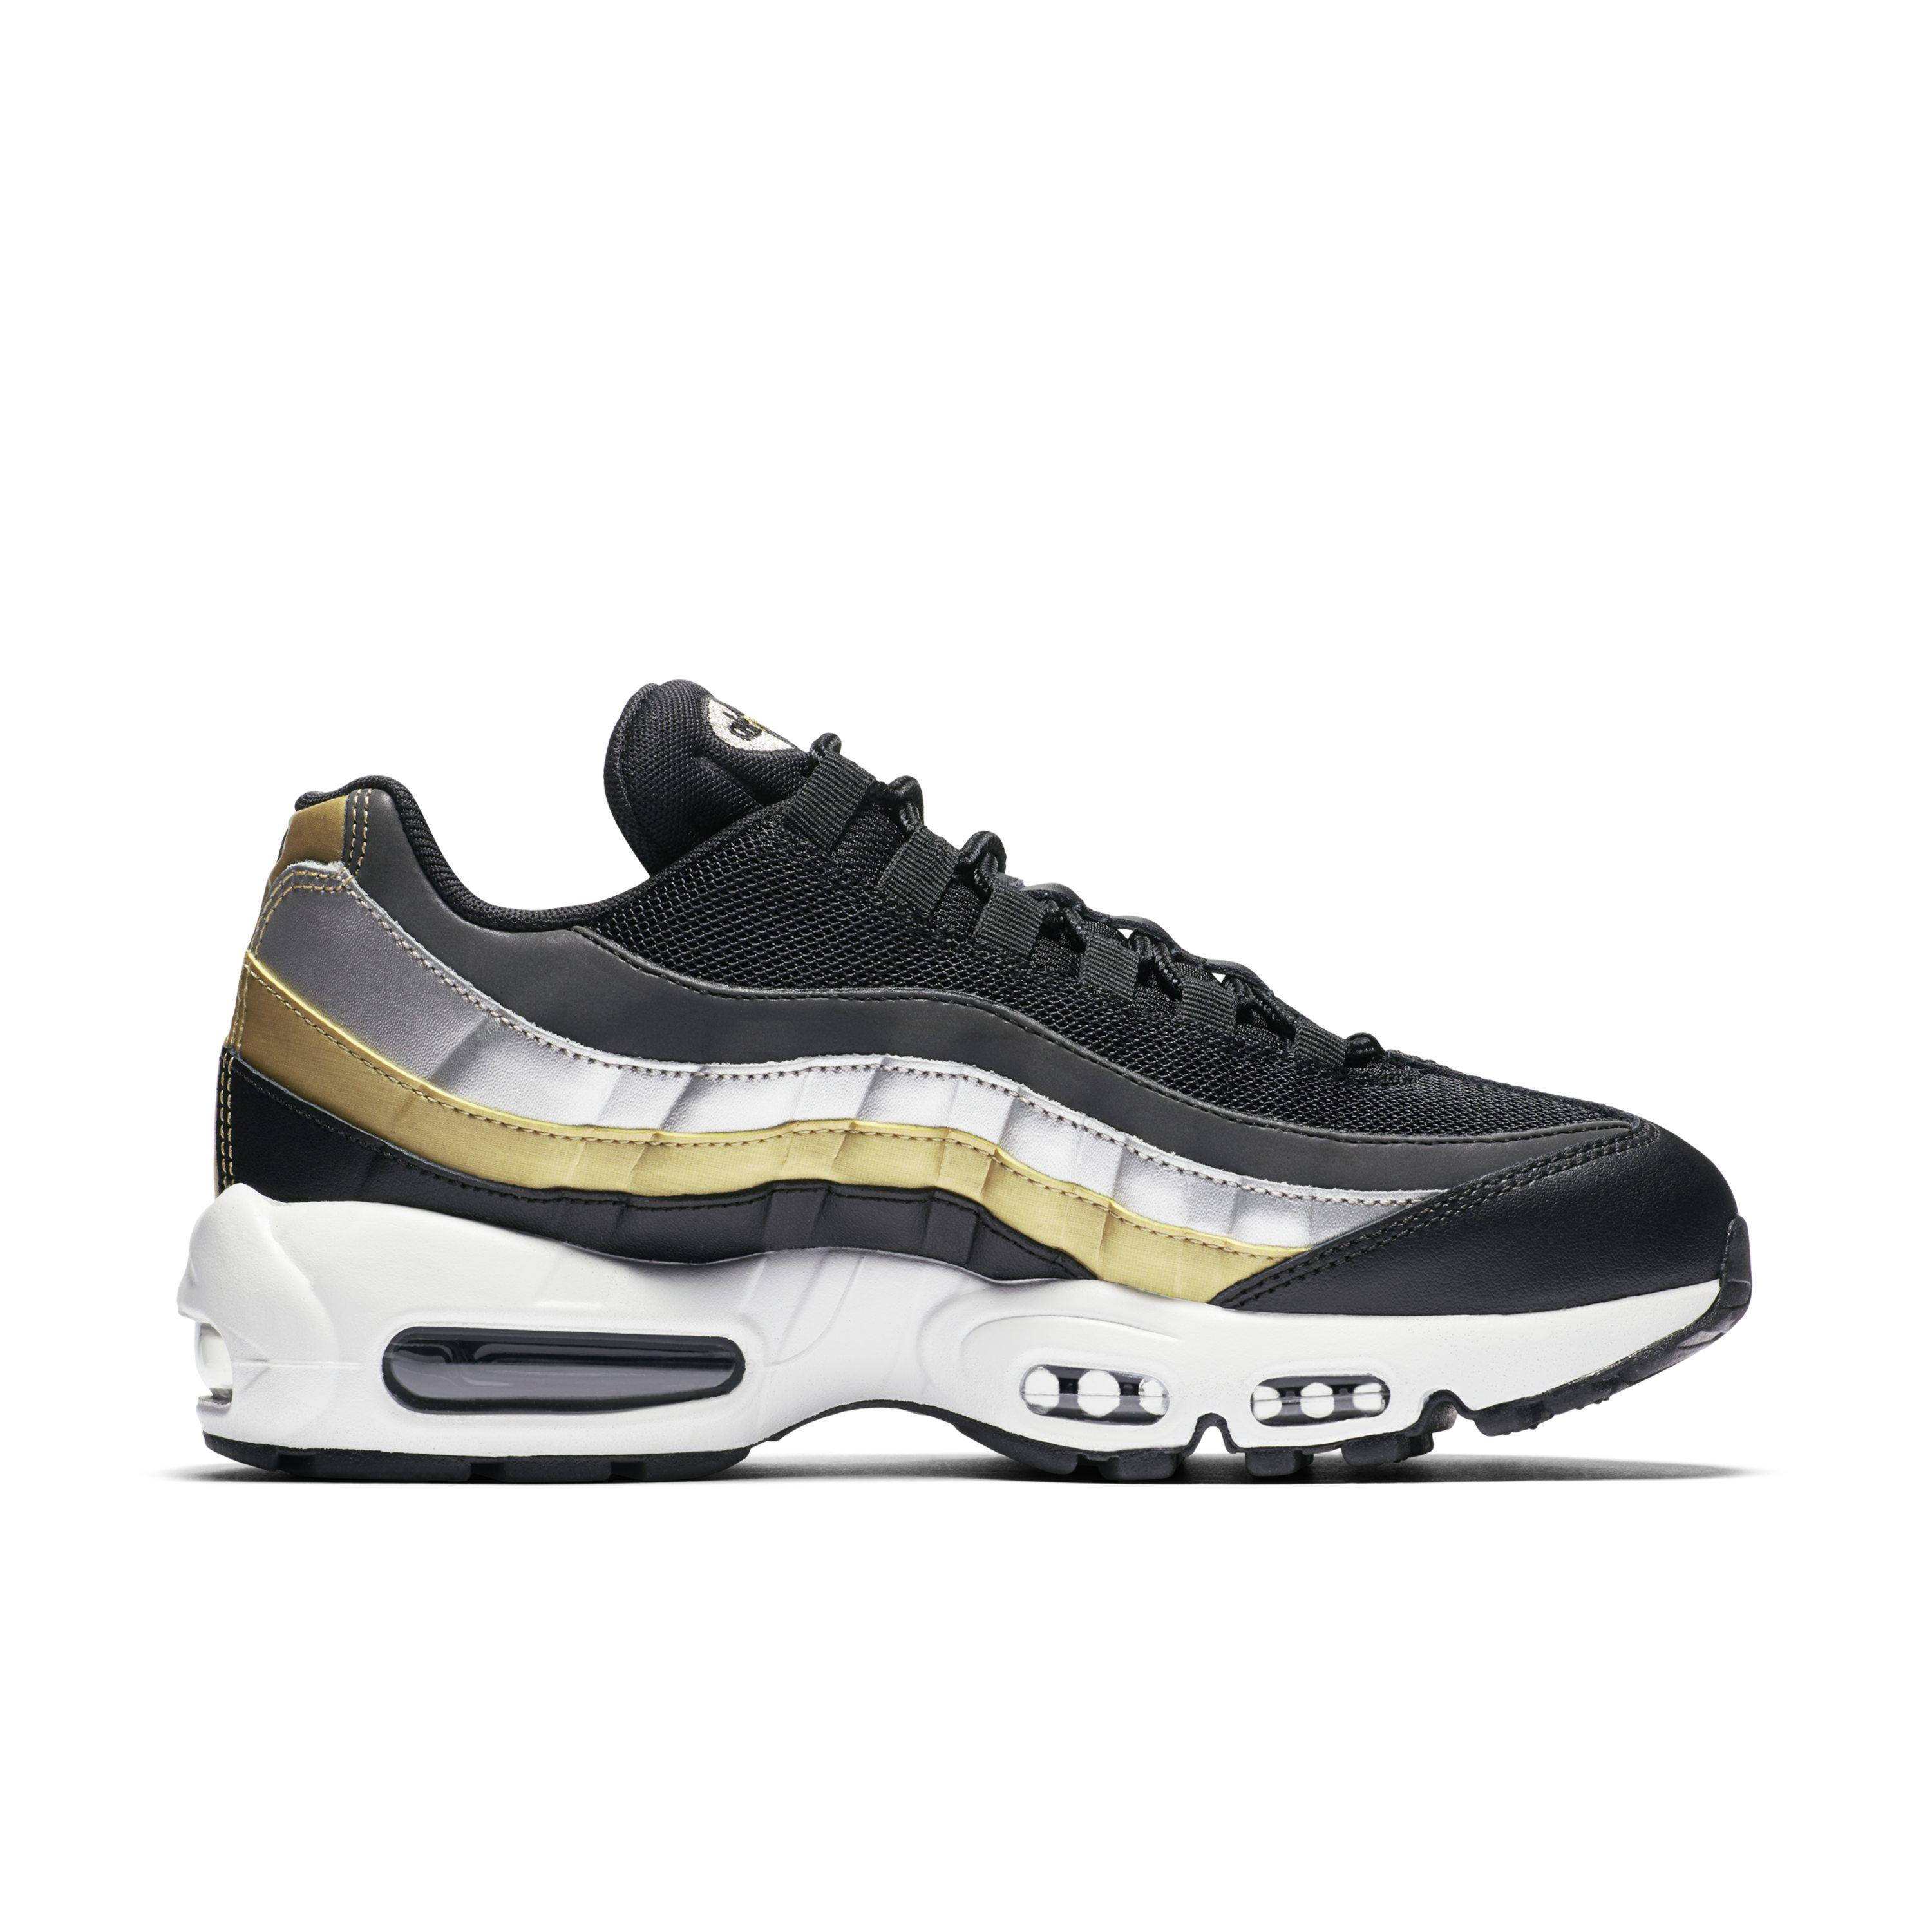 usa cheap sale lowest price size 7 Air Max 95 Lux Metallic Shoe